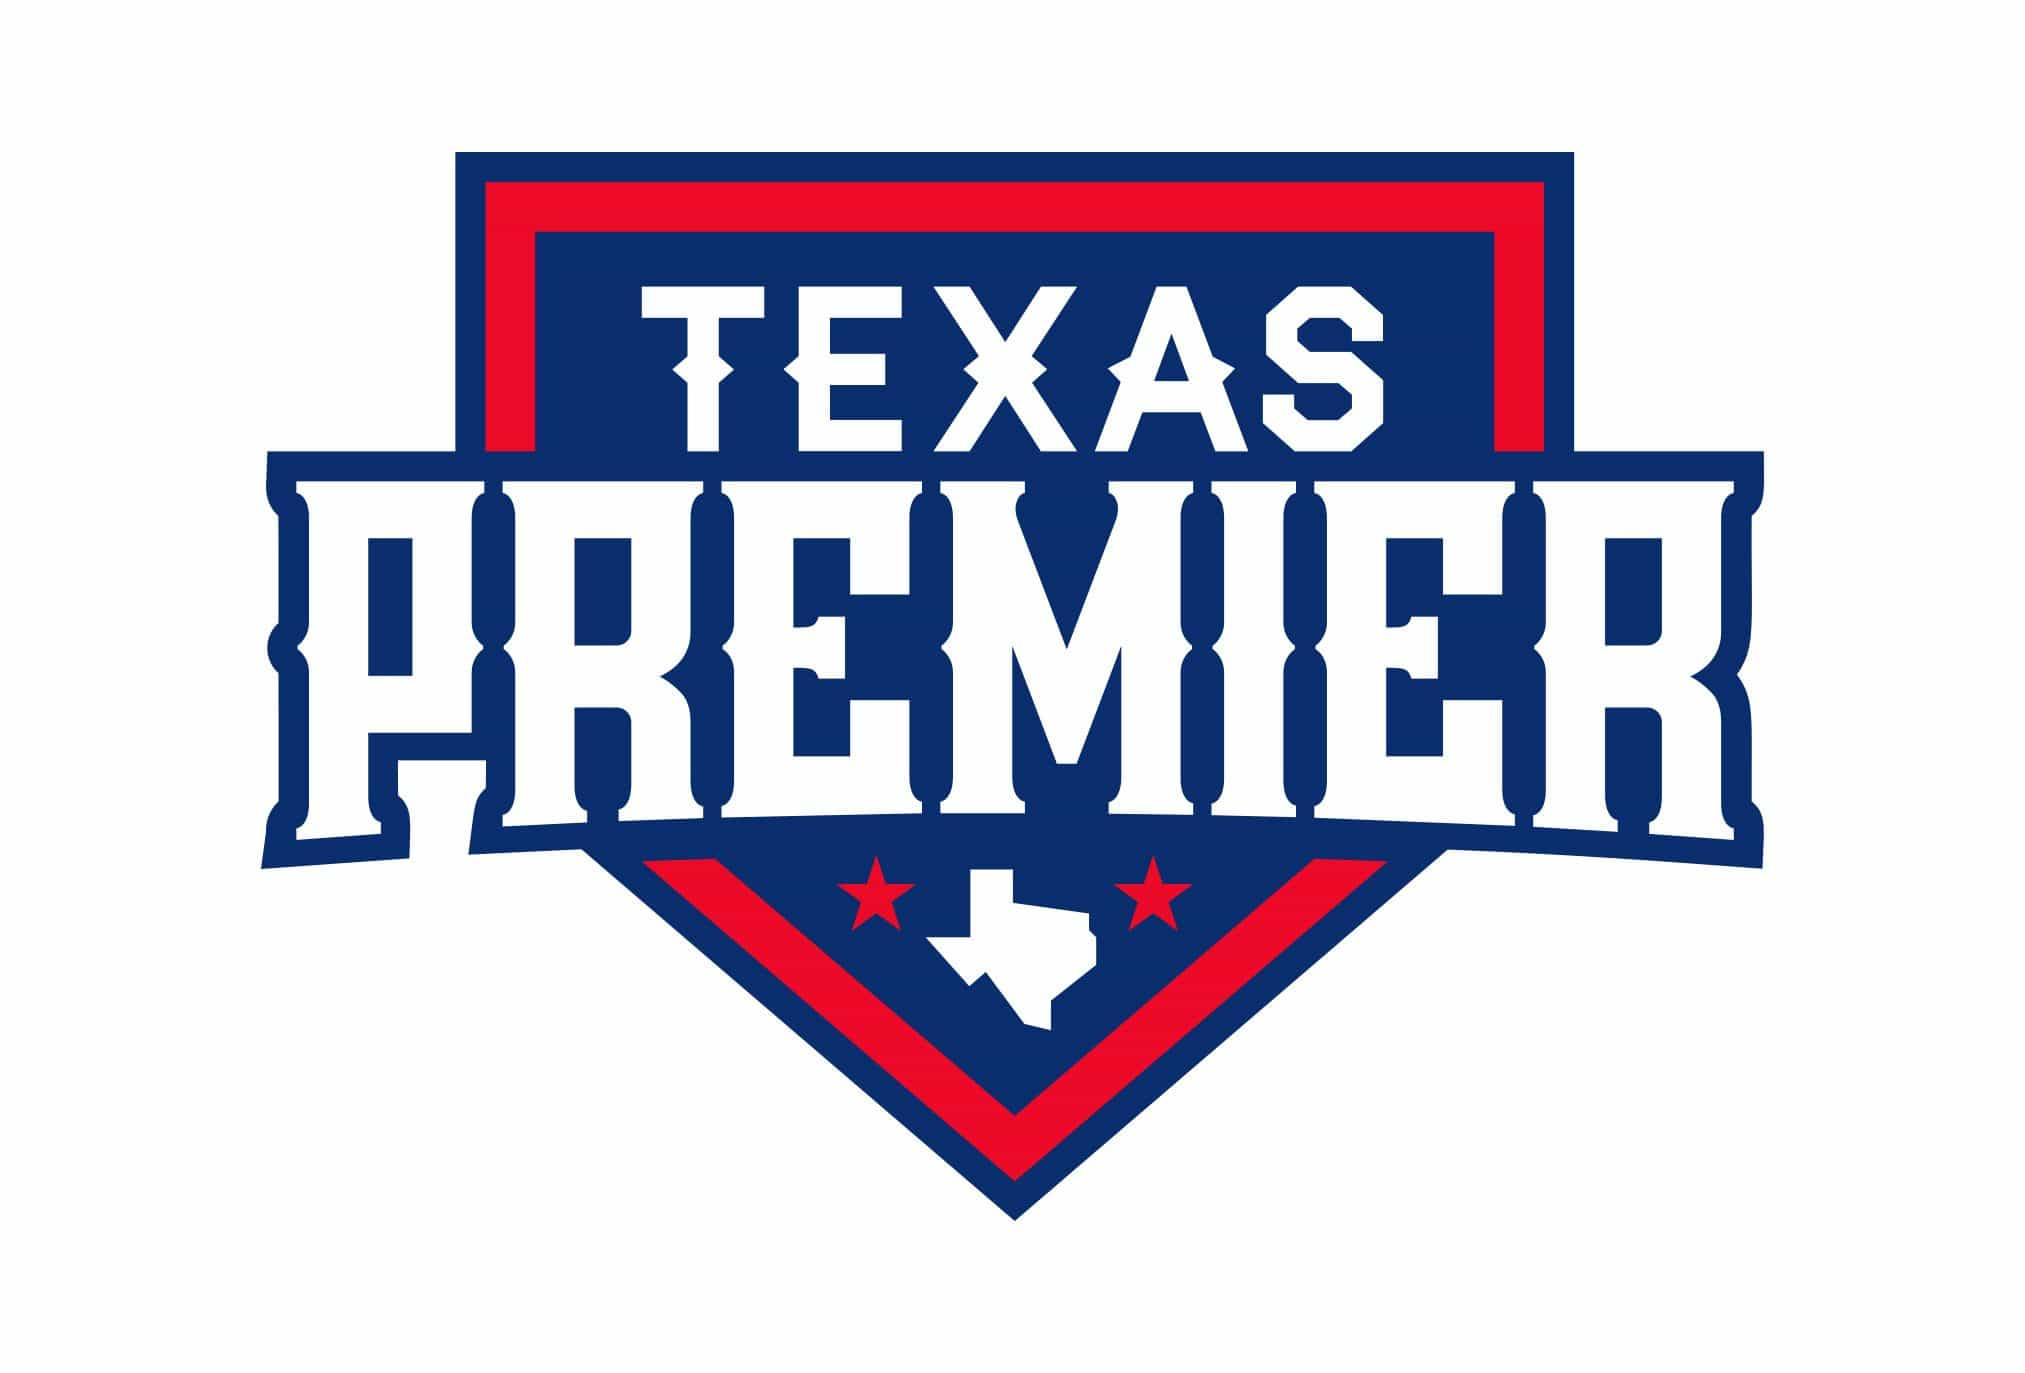 Partner of Texas Premier